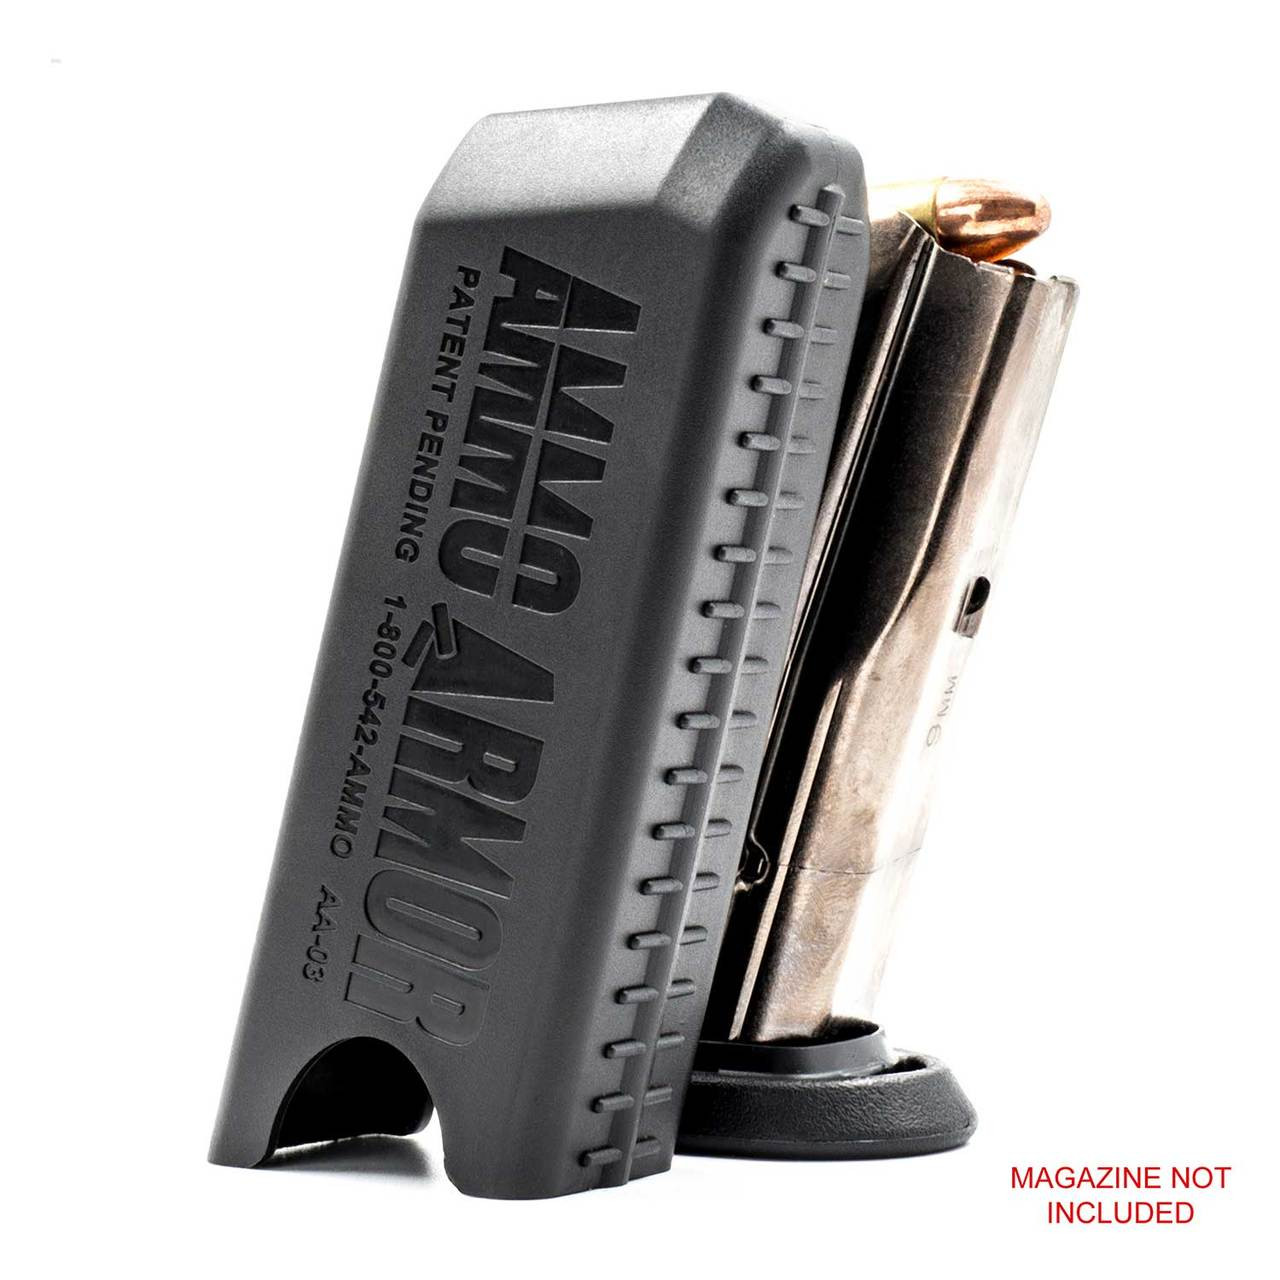 Ruger American Compact Magazine Protector